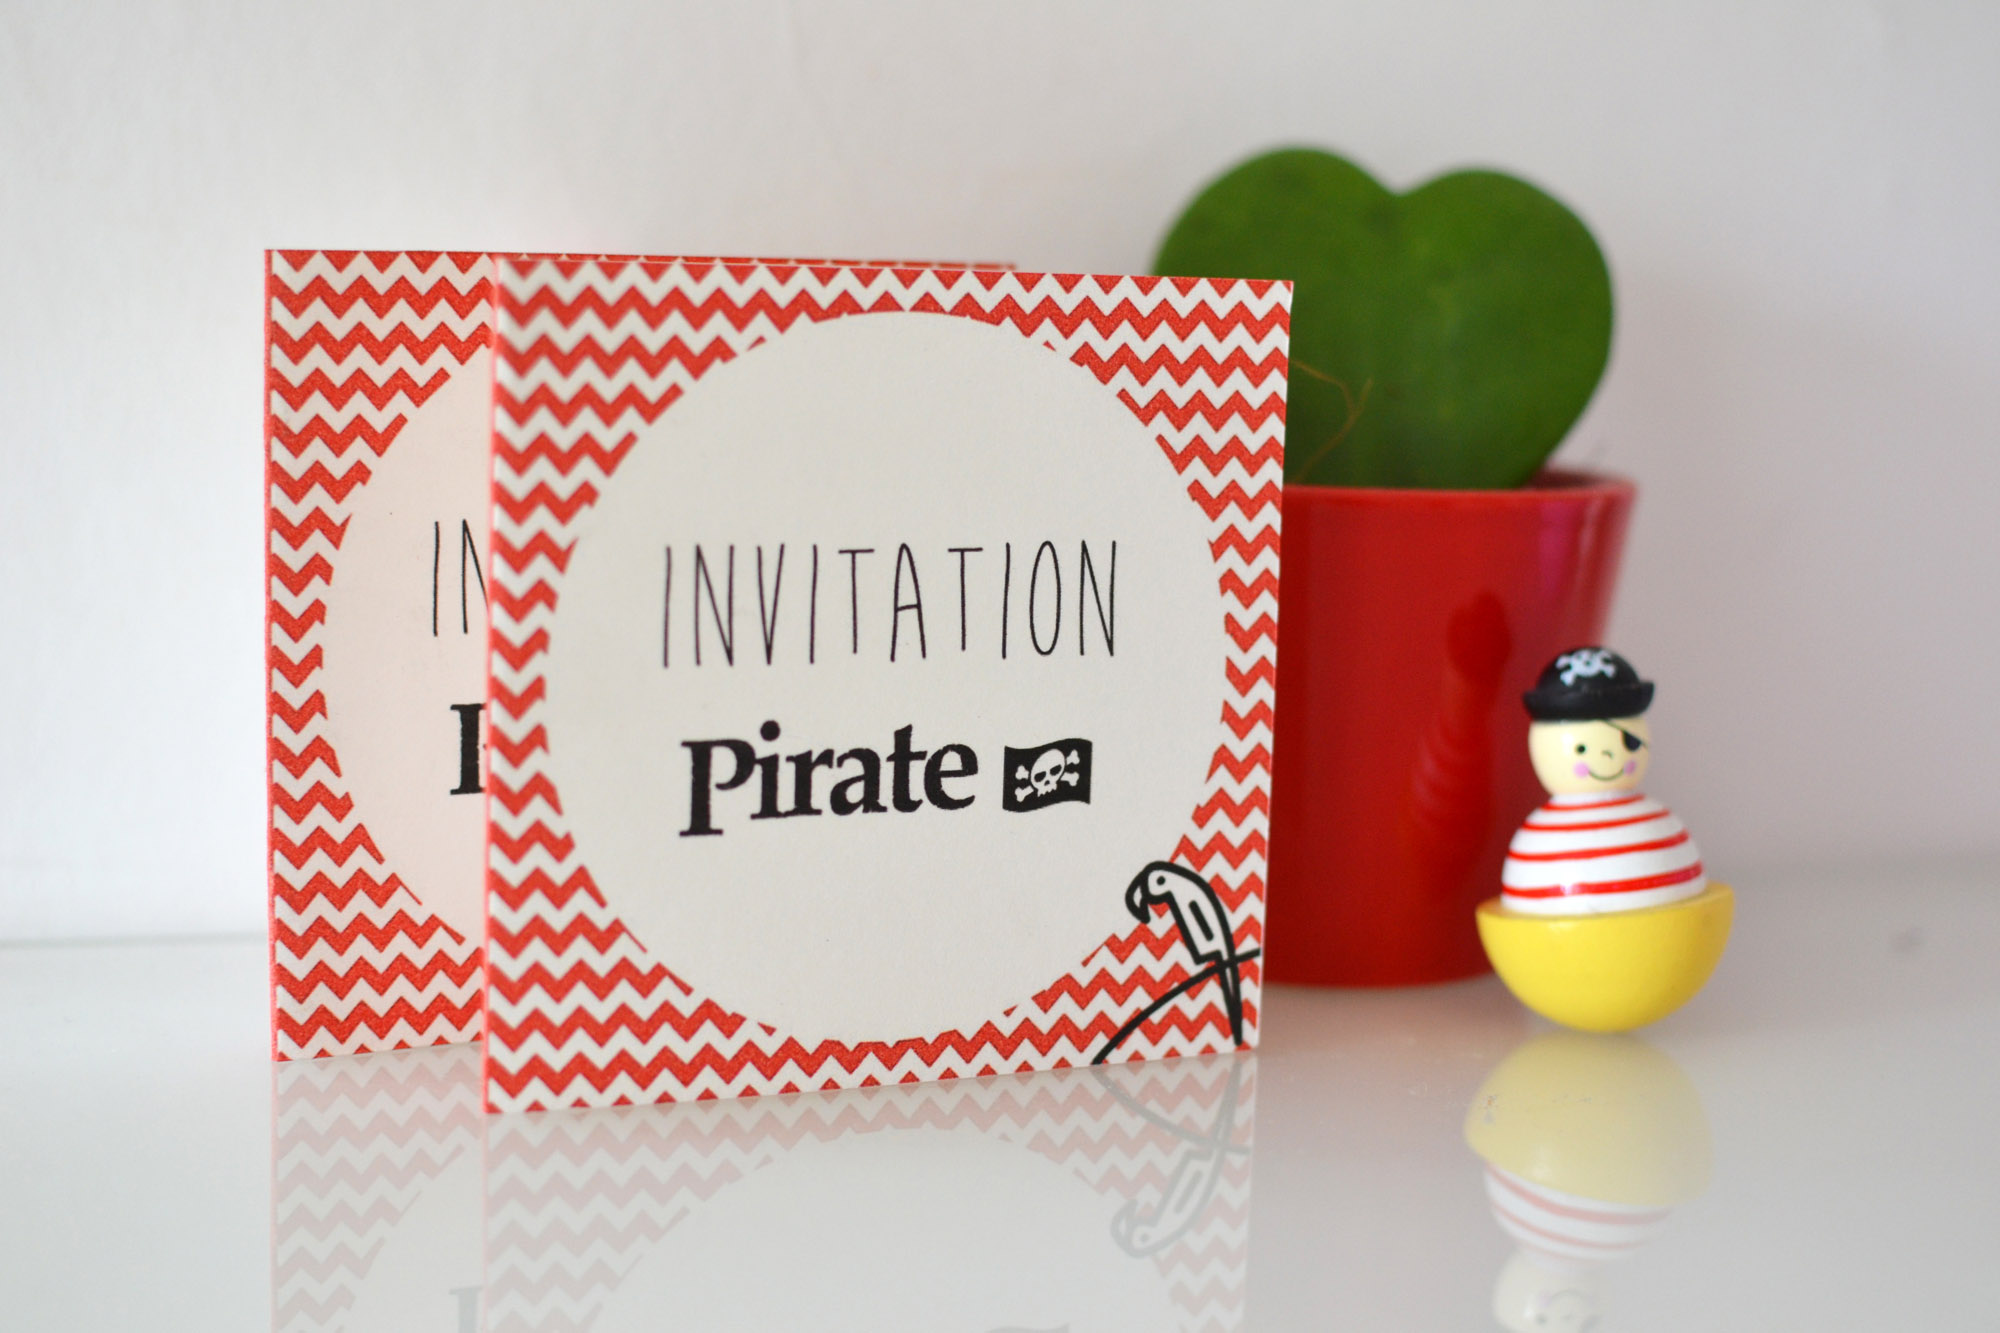 invitation pour une f te pirate 8 9 10 ans mon anniversaire pirate. Black Bedroom Furniture Sets. Home Design Ideas